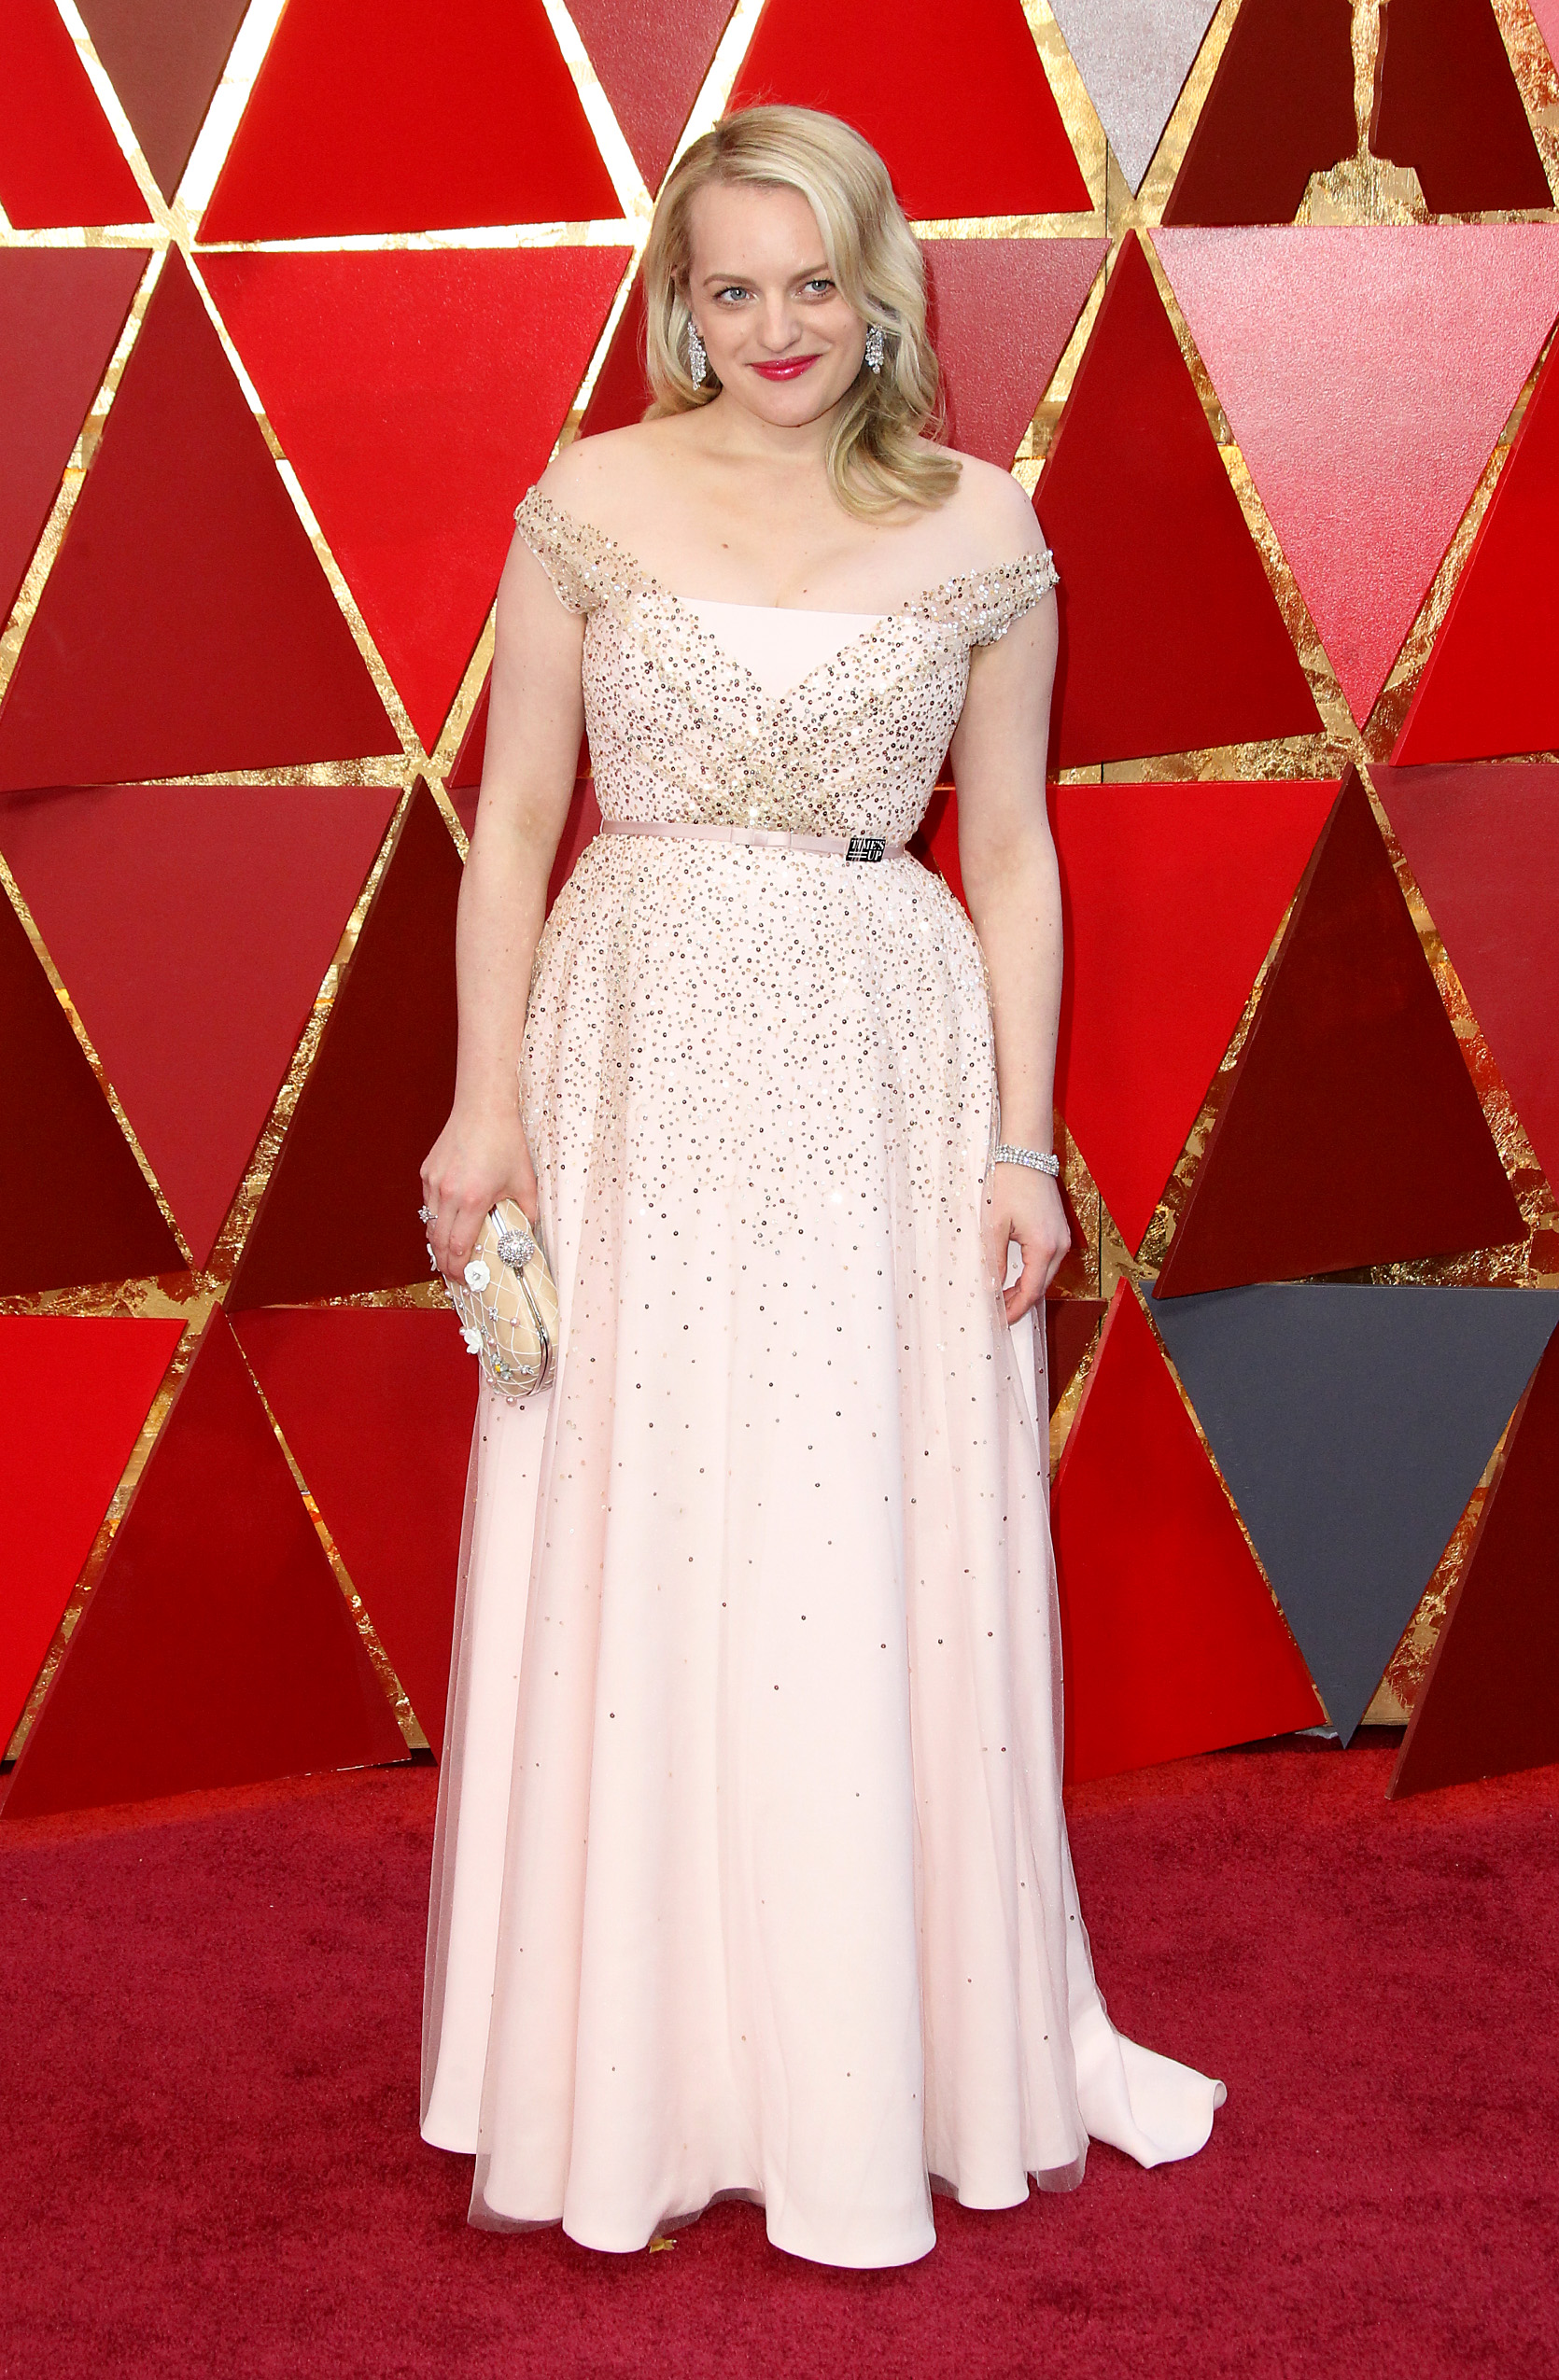 Elisabeth Moss{&nbsp;}arrives at the 90th Annual Academy Awards (Oscars) held at the Dolby Theater in Hollywood, California. (Image: Adriana M. Barraza/WENN.com)<p></p>